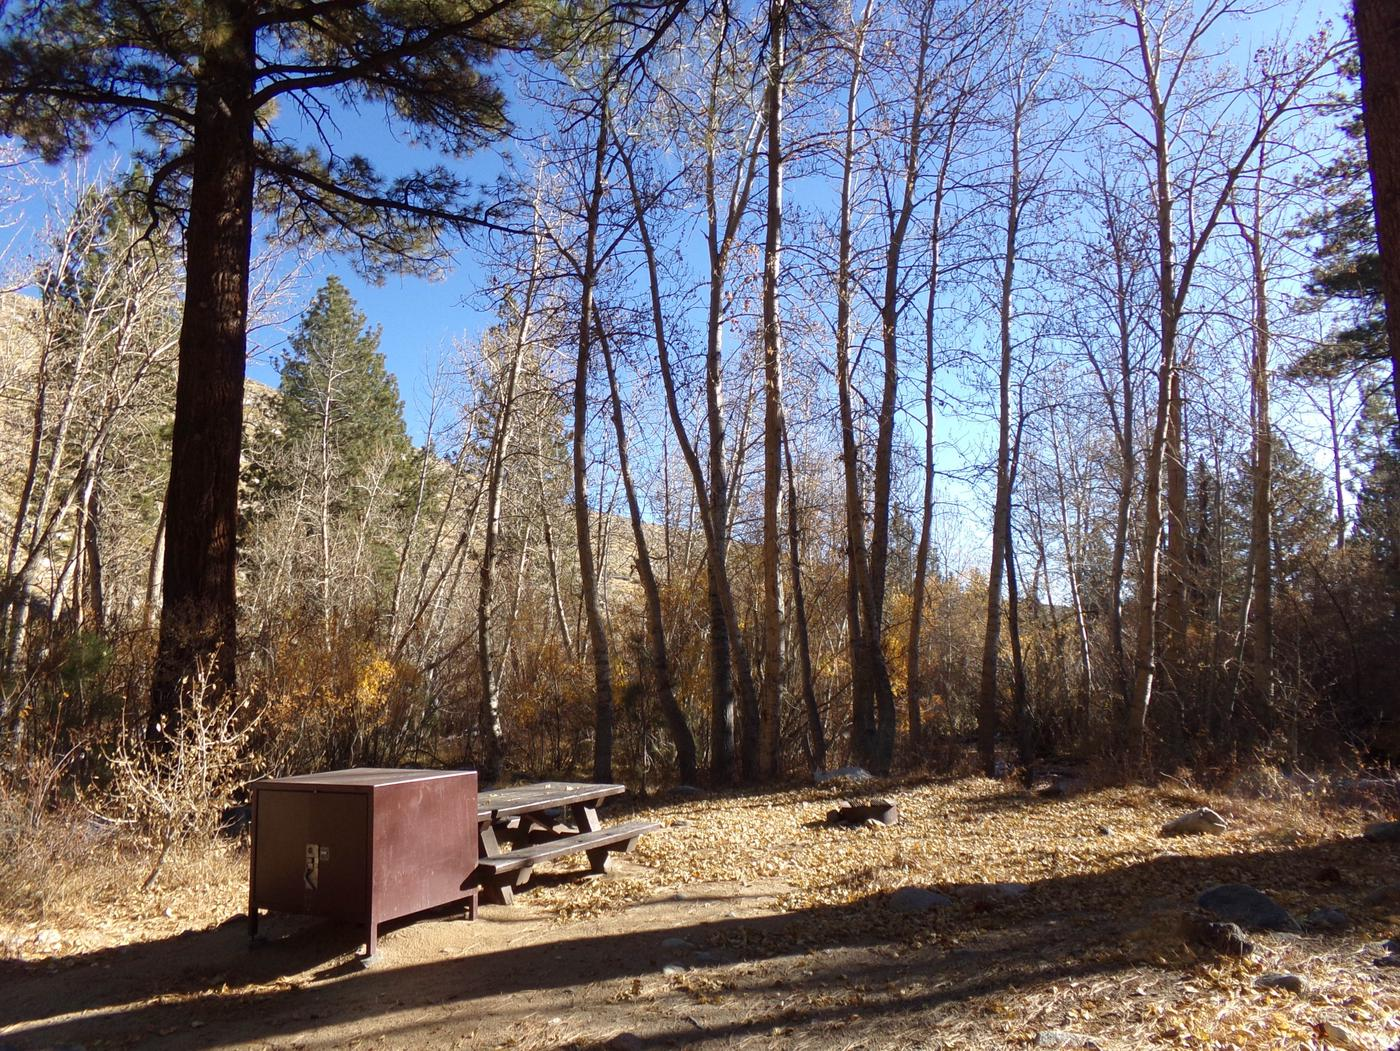 Upper Sage Flat Campground site #19 featuring picnic table, food storage, and fire pit.